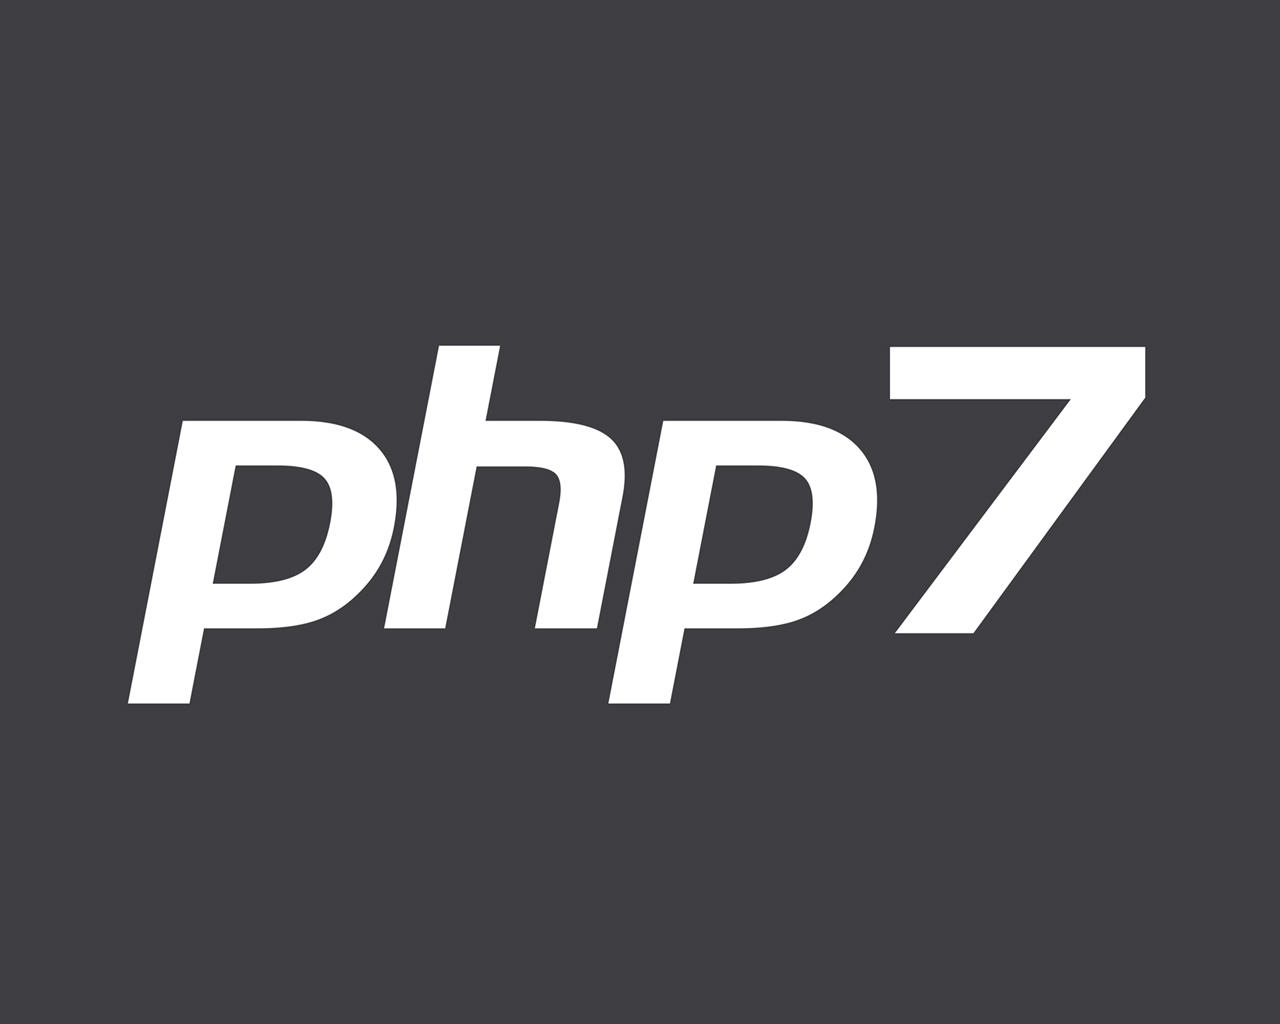 php services on envato studio, Powerpoint templates